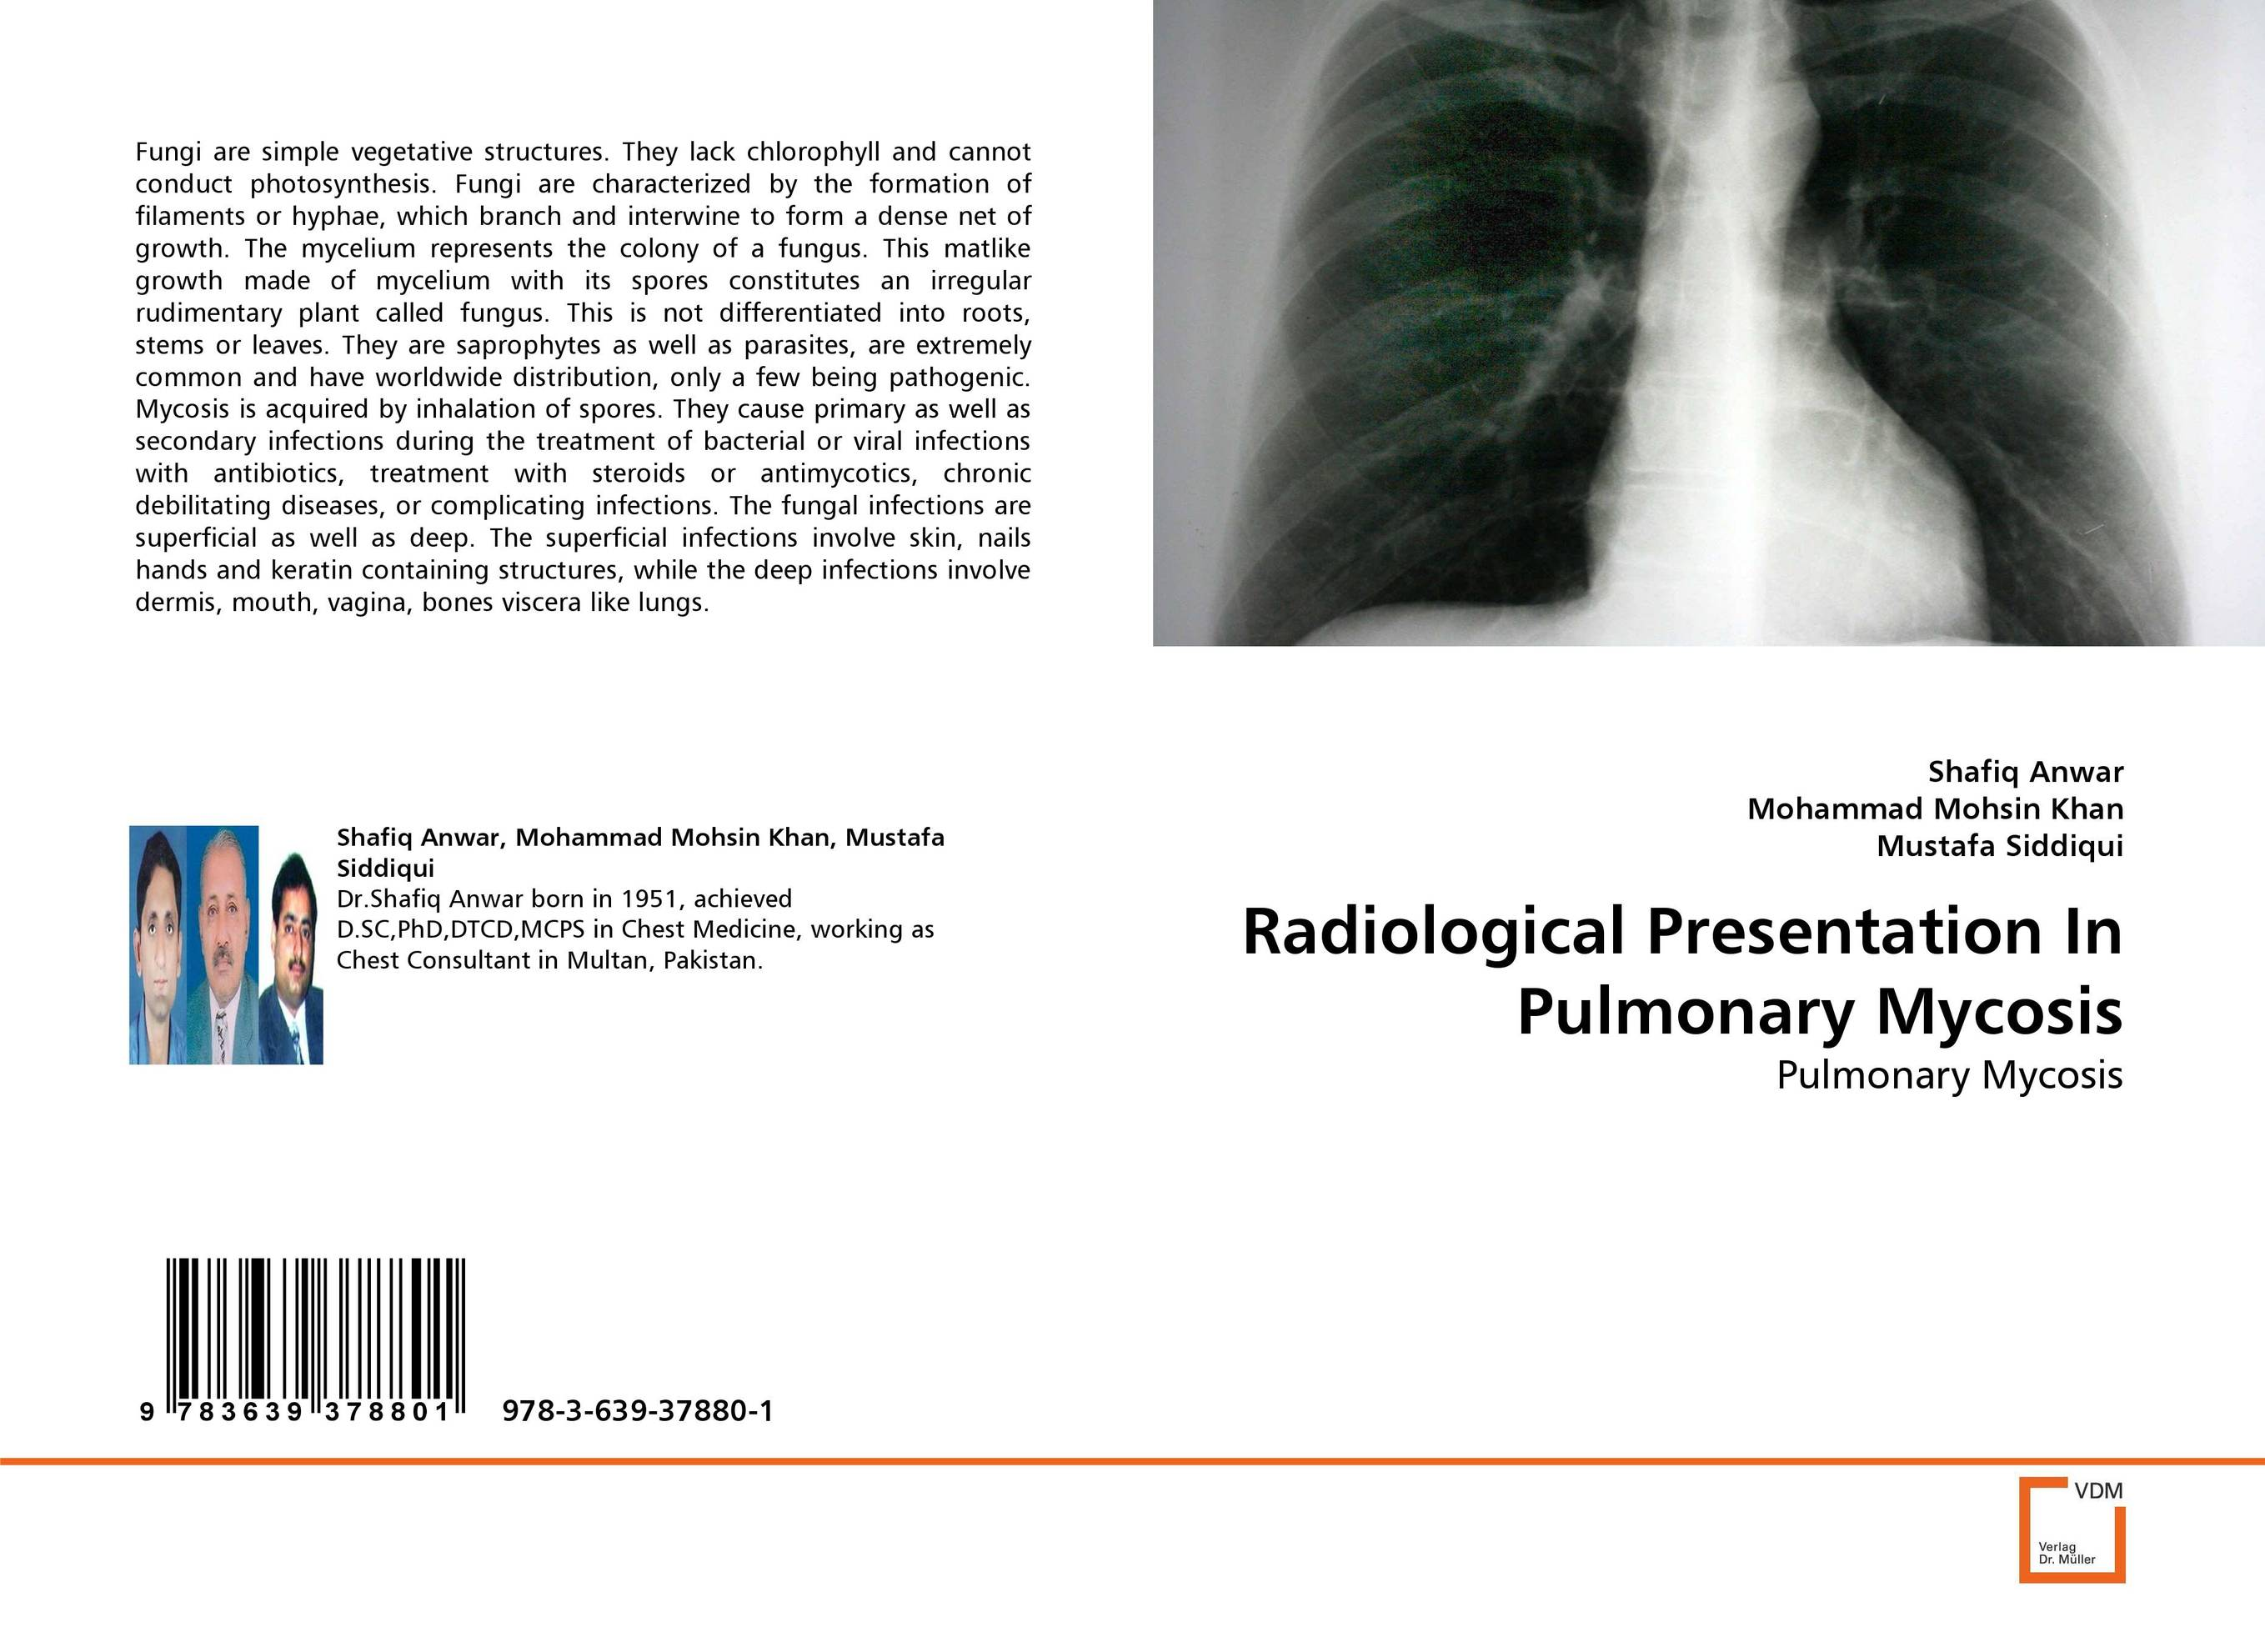 Radiological Presentation In Pulmonary Mycosis caleb williams or things as they are